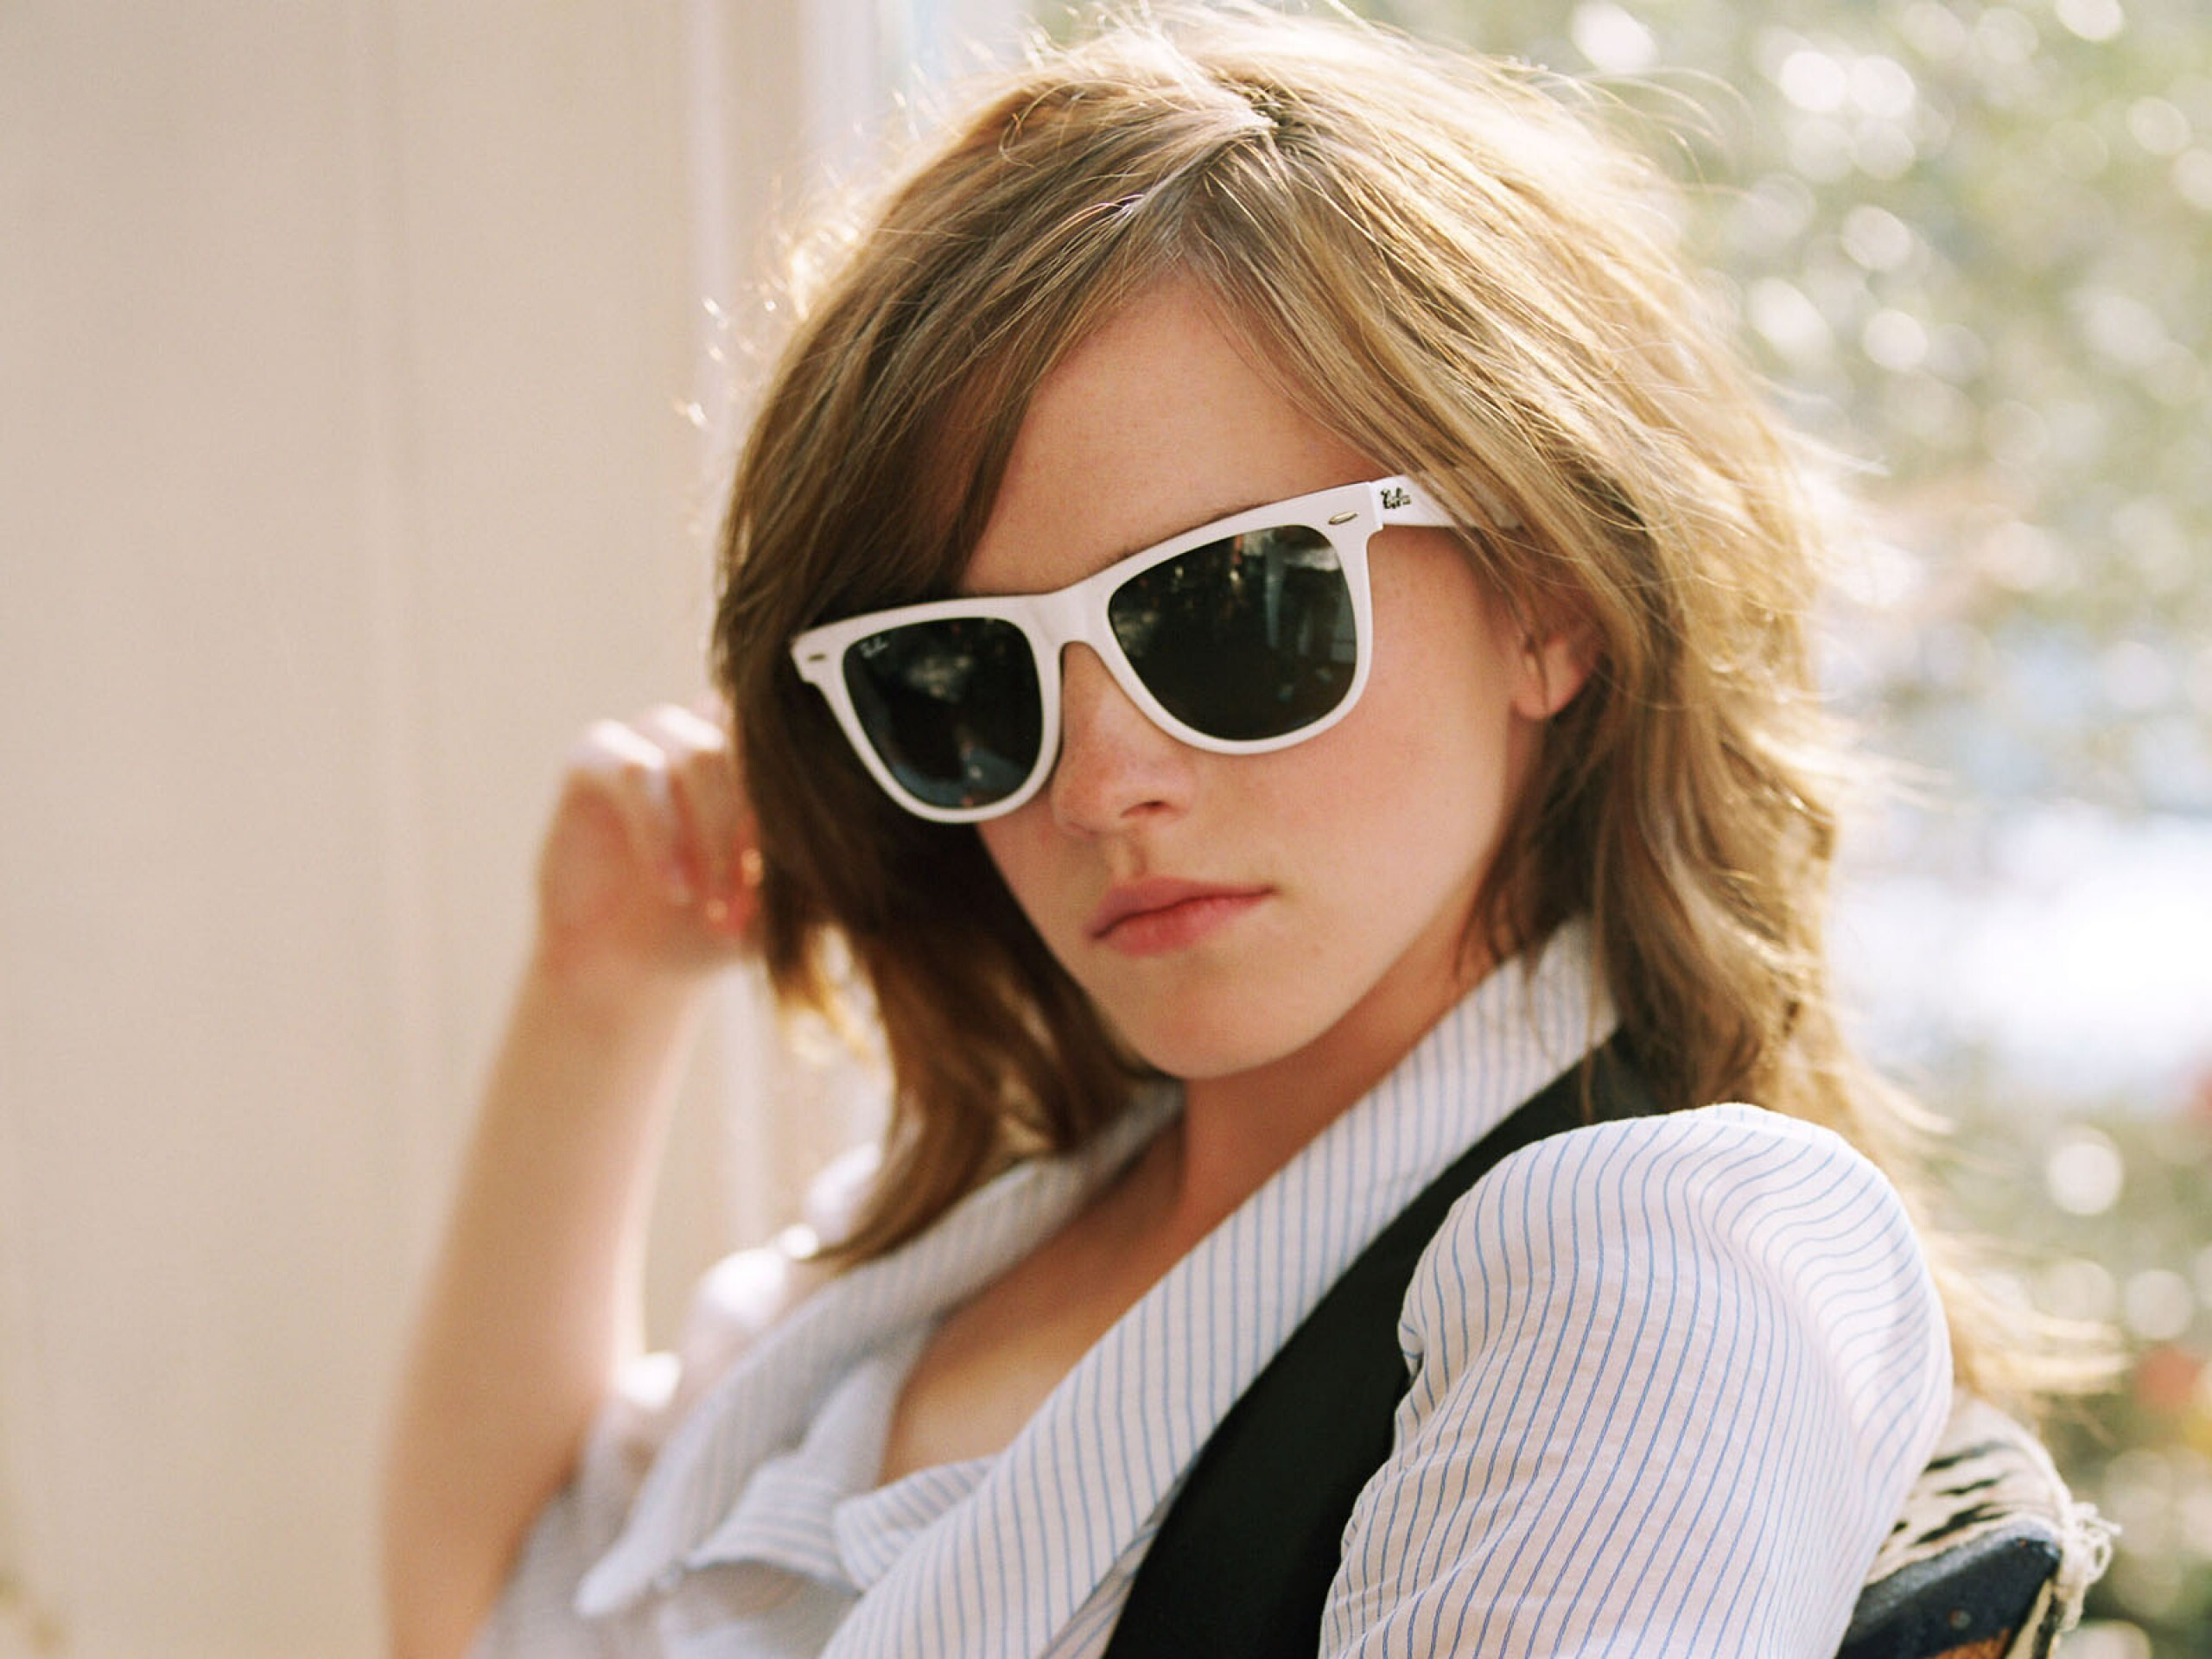 popular english actress emma watson in goggles hd wallpapers | hd